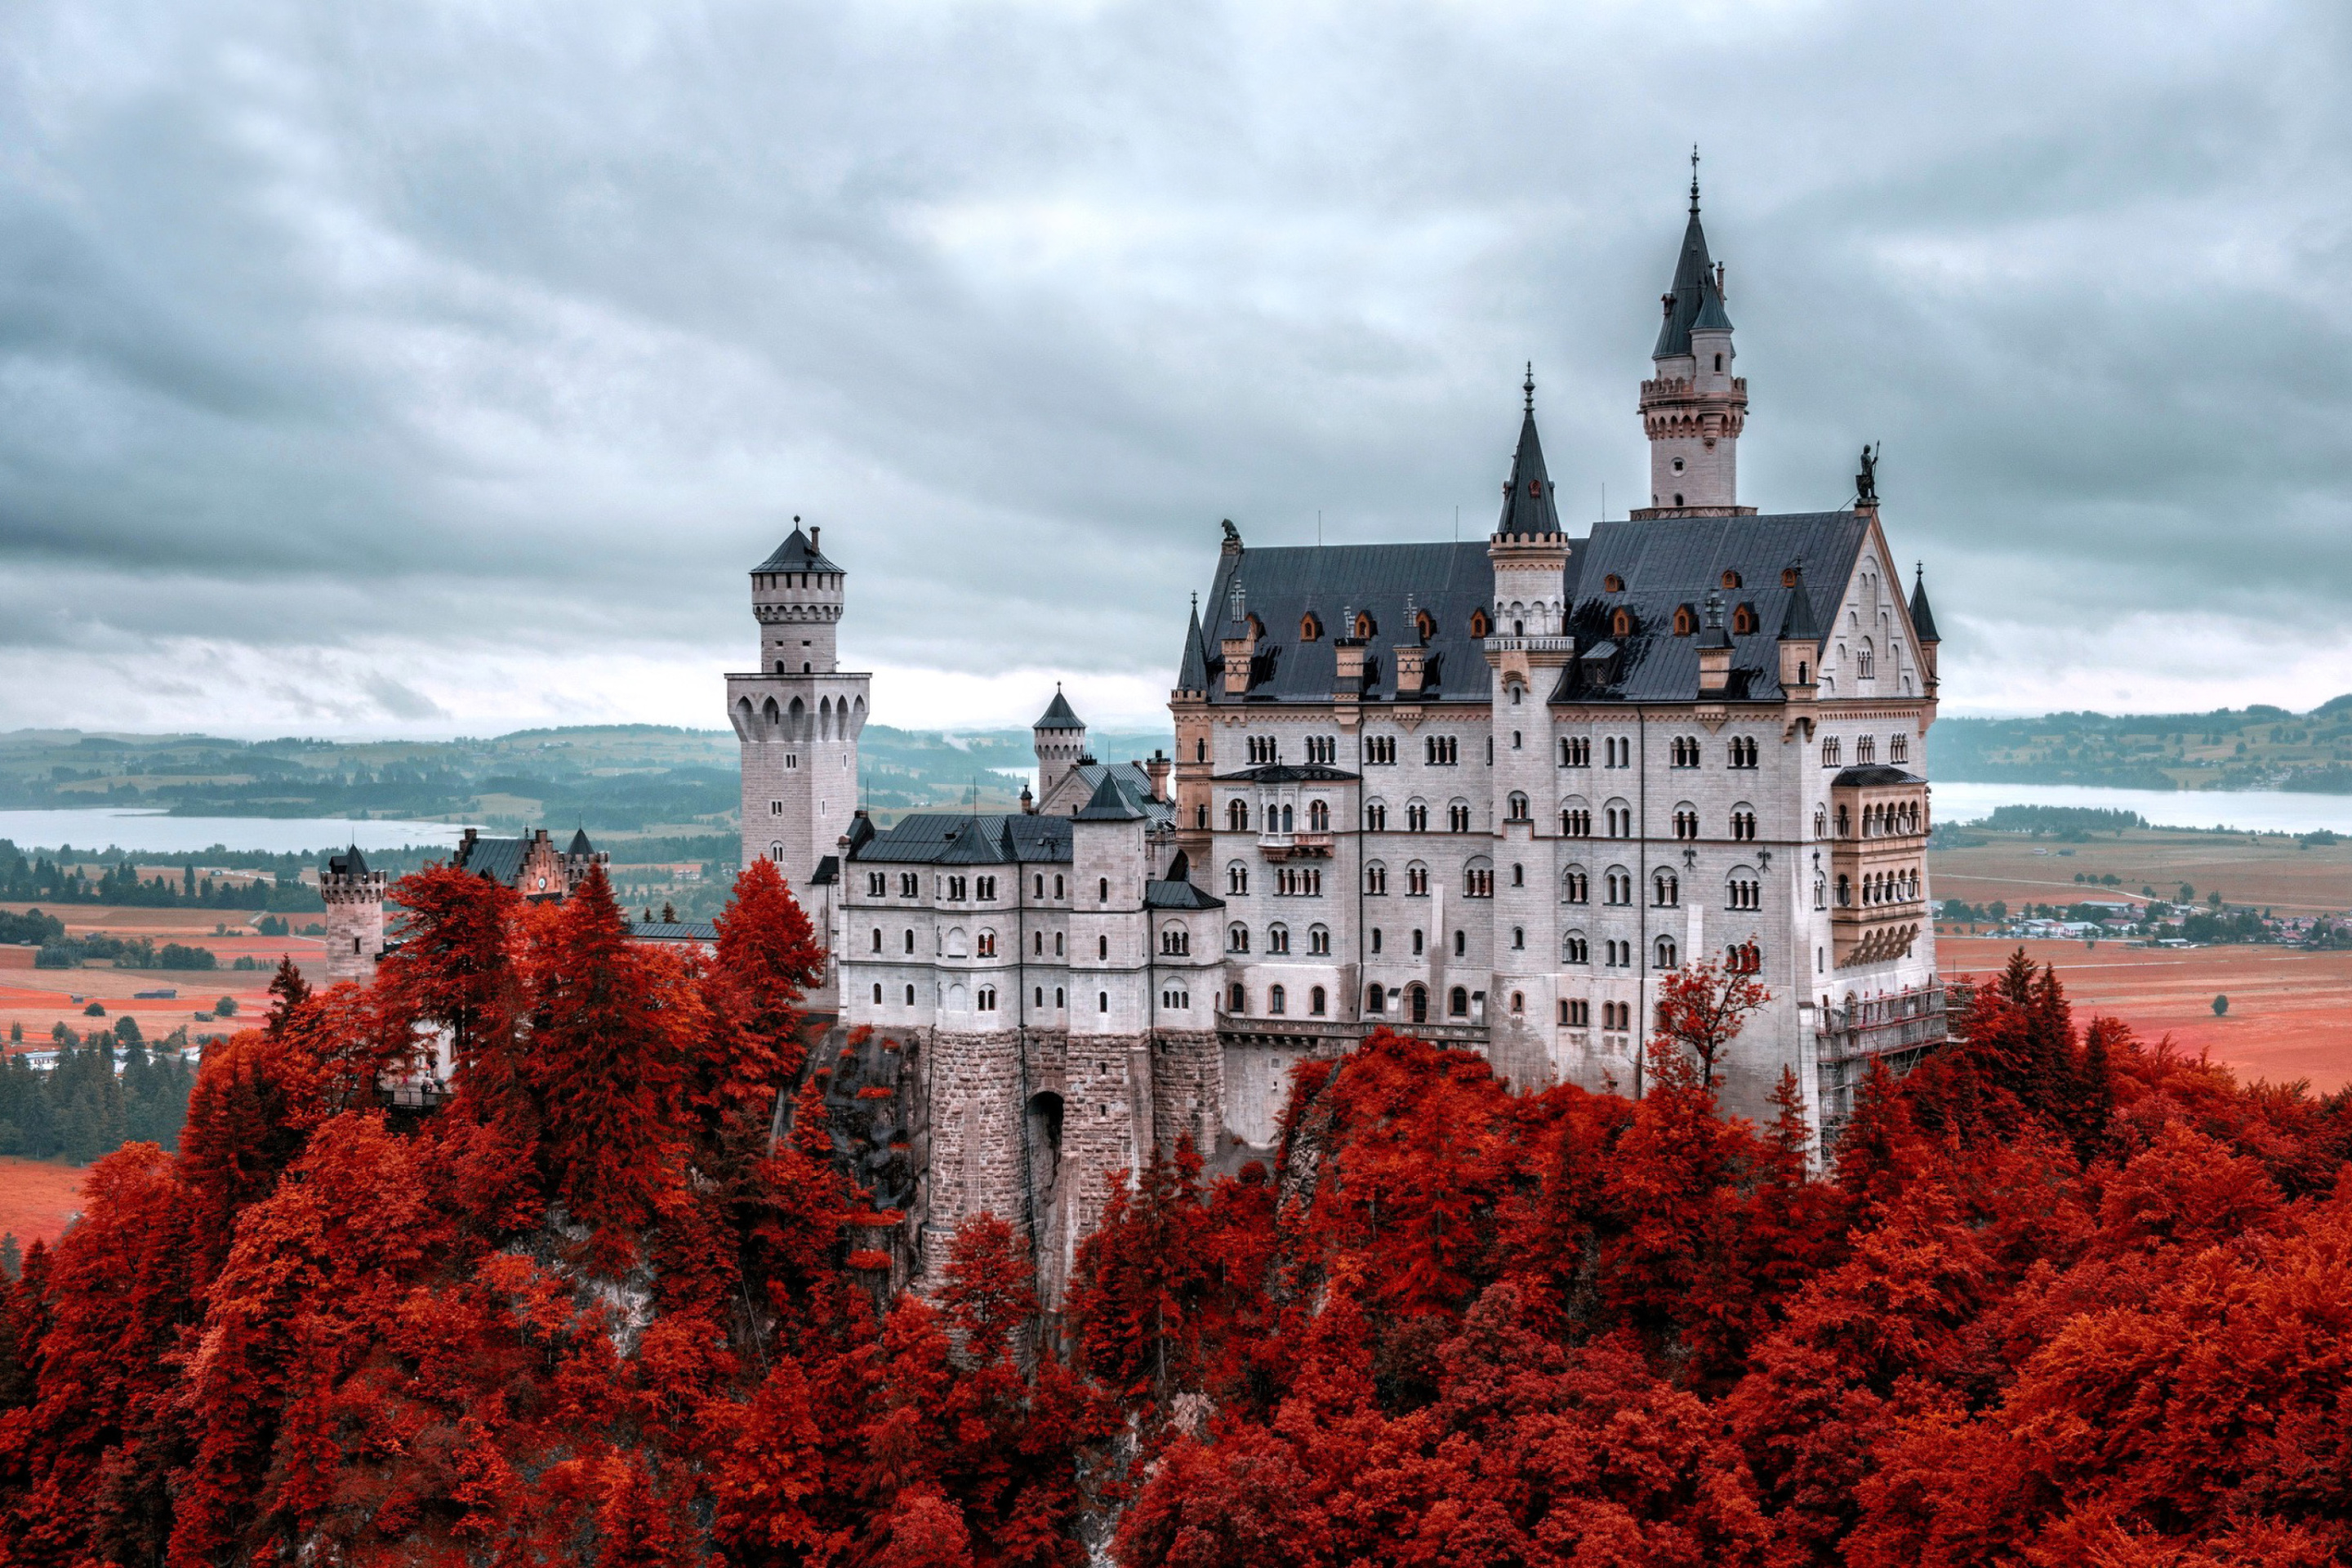 Neuschwanstein-Castle-in-Fall-2880x1920